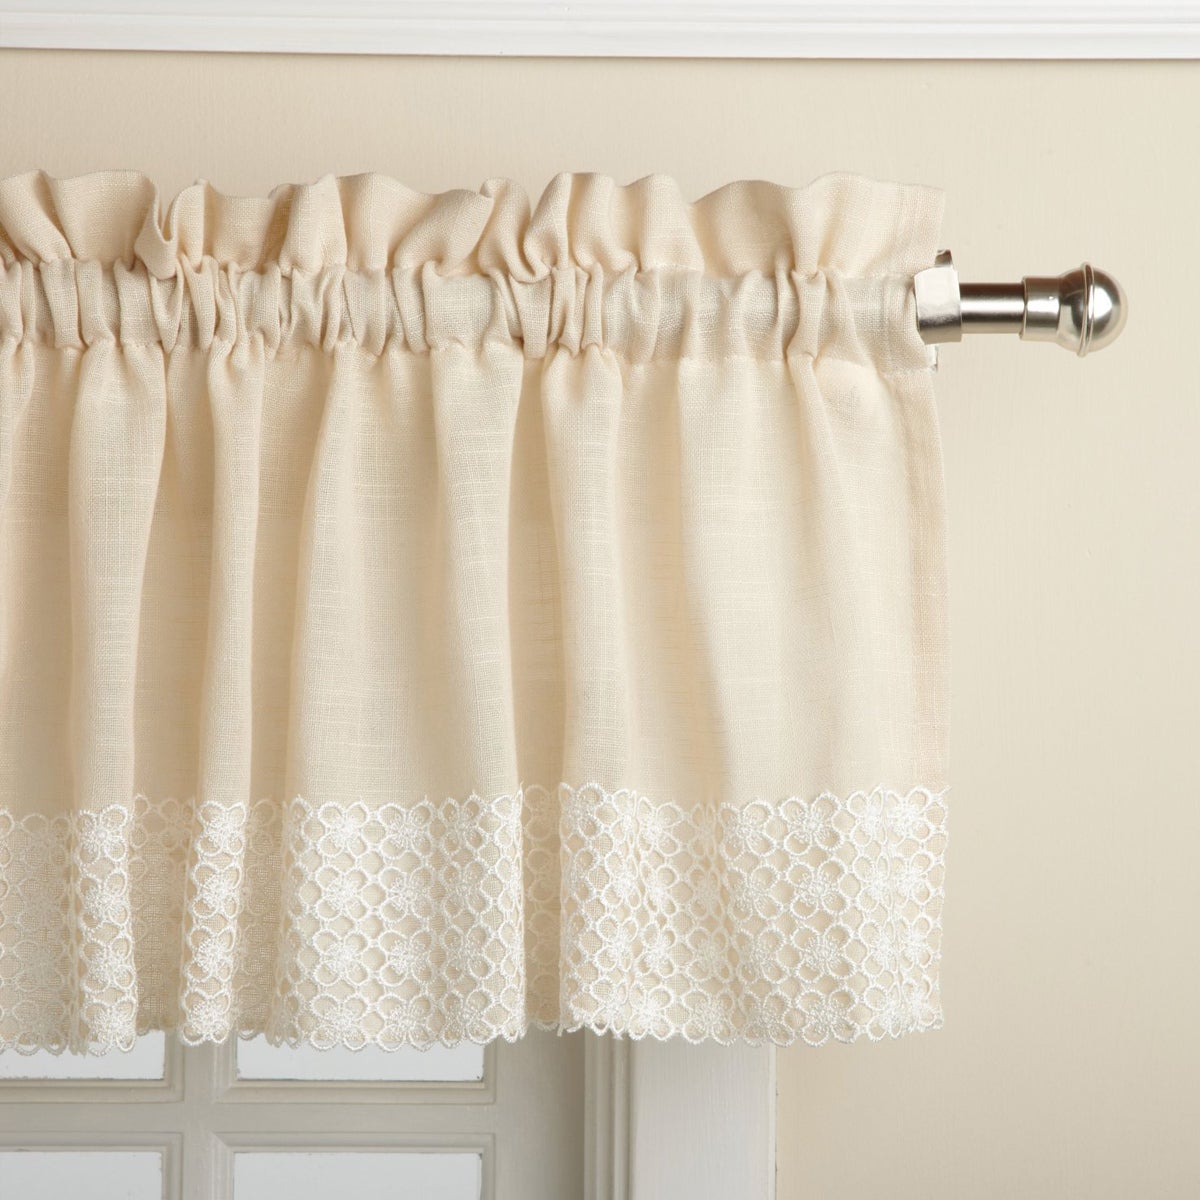 French Vanilla Country Style Curtain Parts With White Daisy Lace Accent Tier, Swag And Valance Options For Country Style Curtain Parts With White Daisy Lace Accent (View 9 of 20)